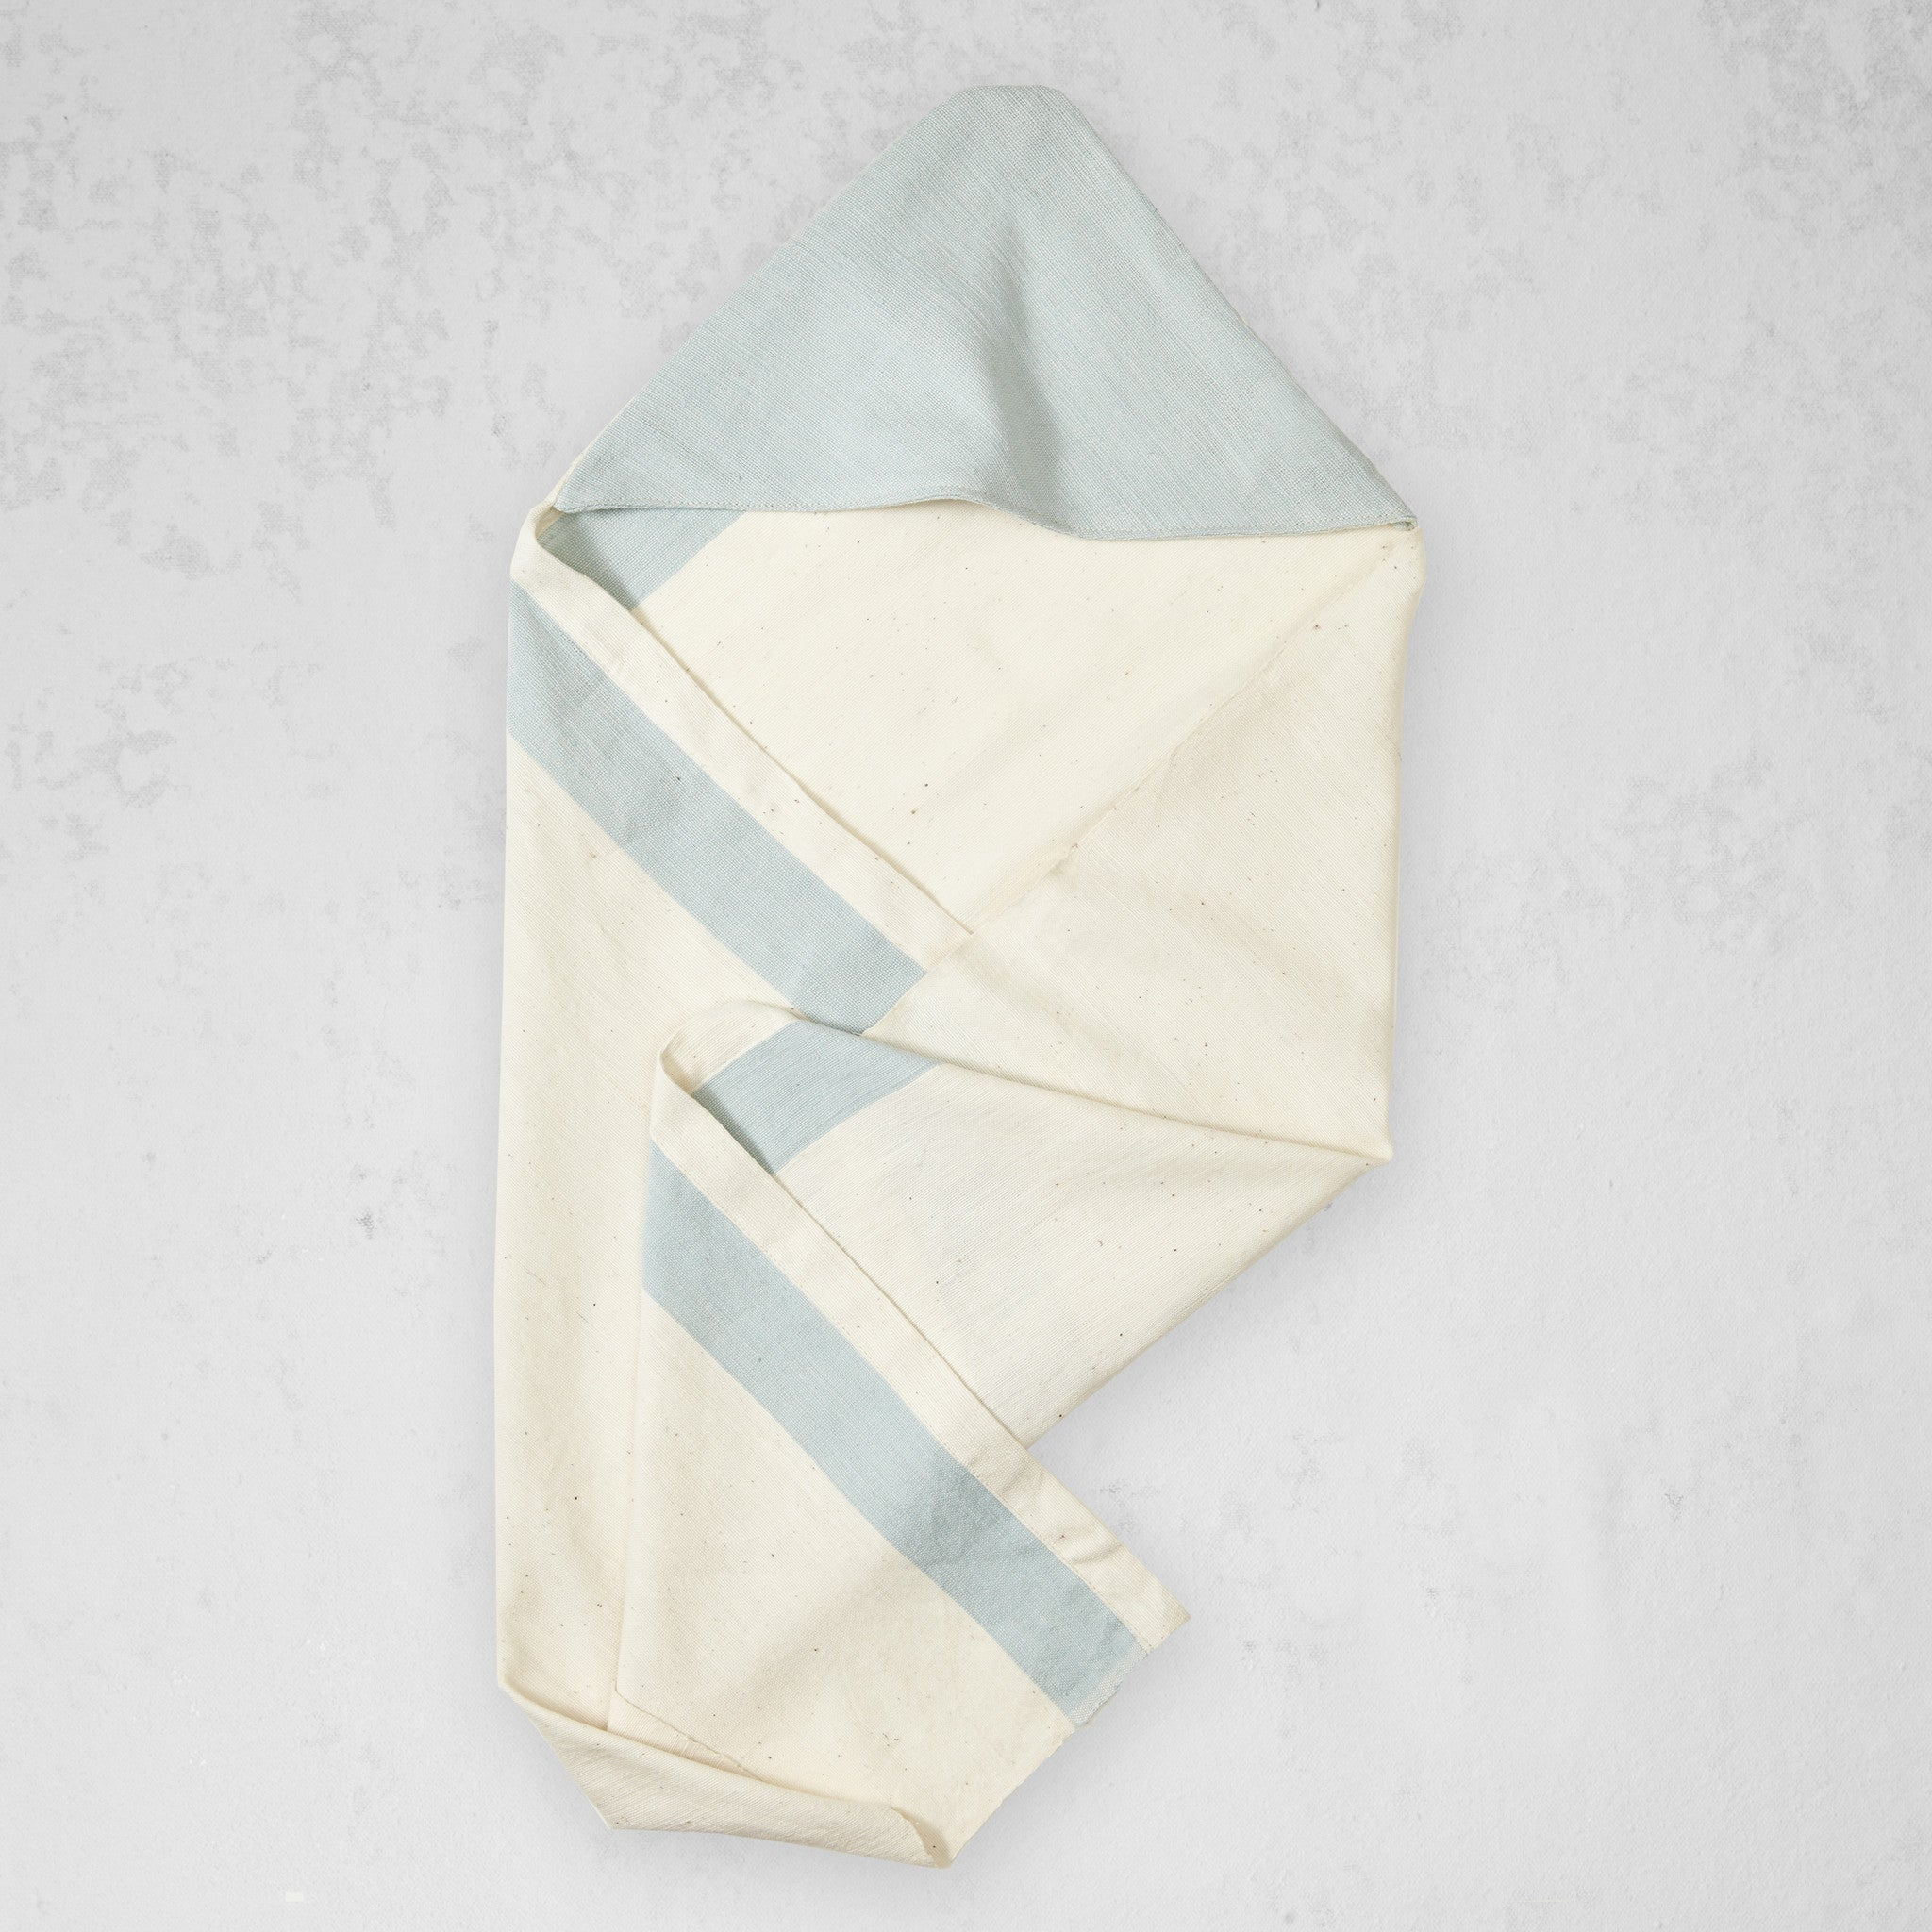 Aboosh Hooded Towel - Blue Ivy